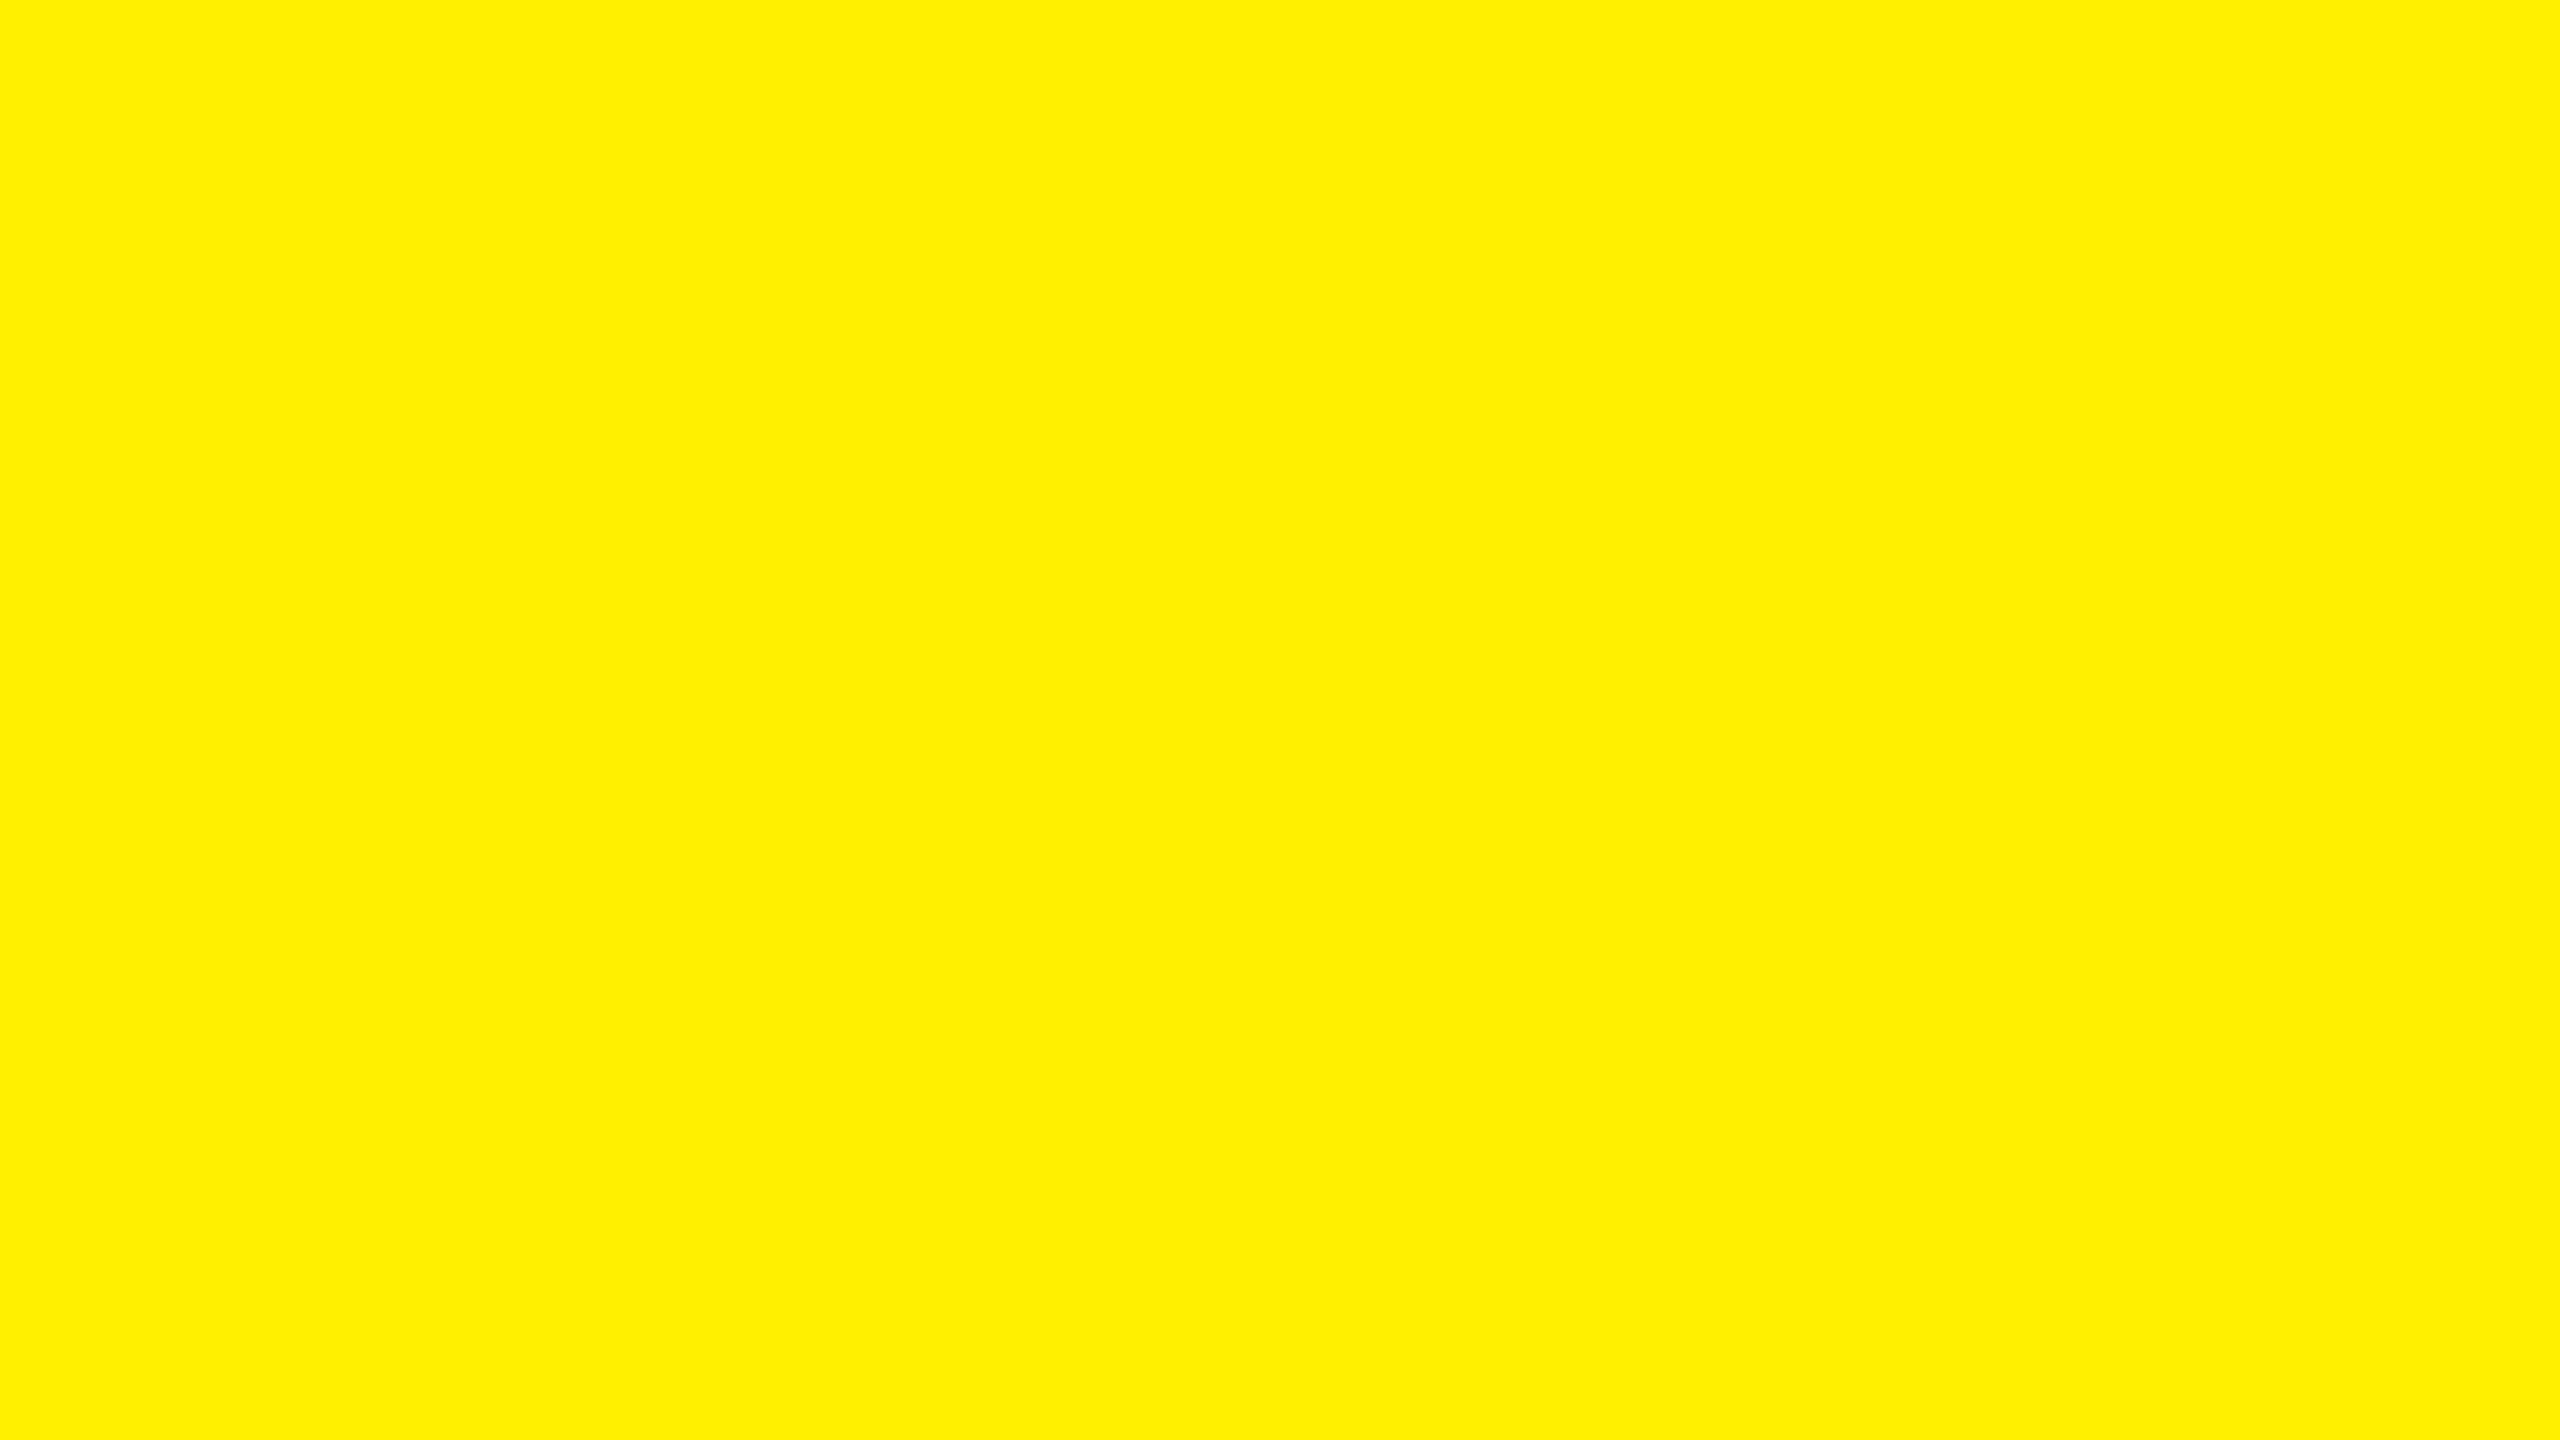 2560x1440 Yellow Rose Solid Color Background